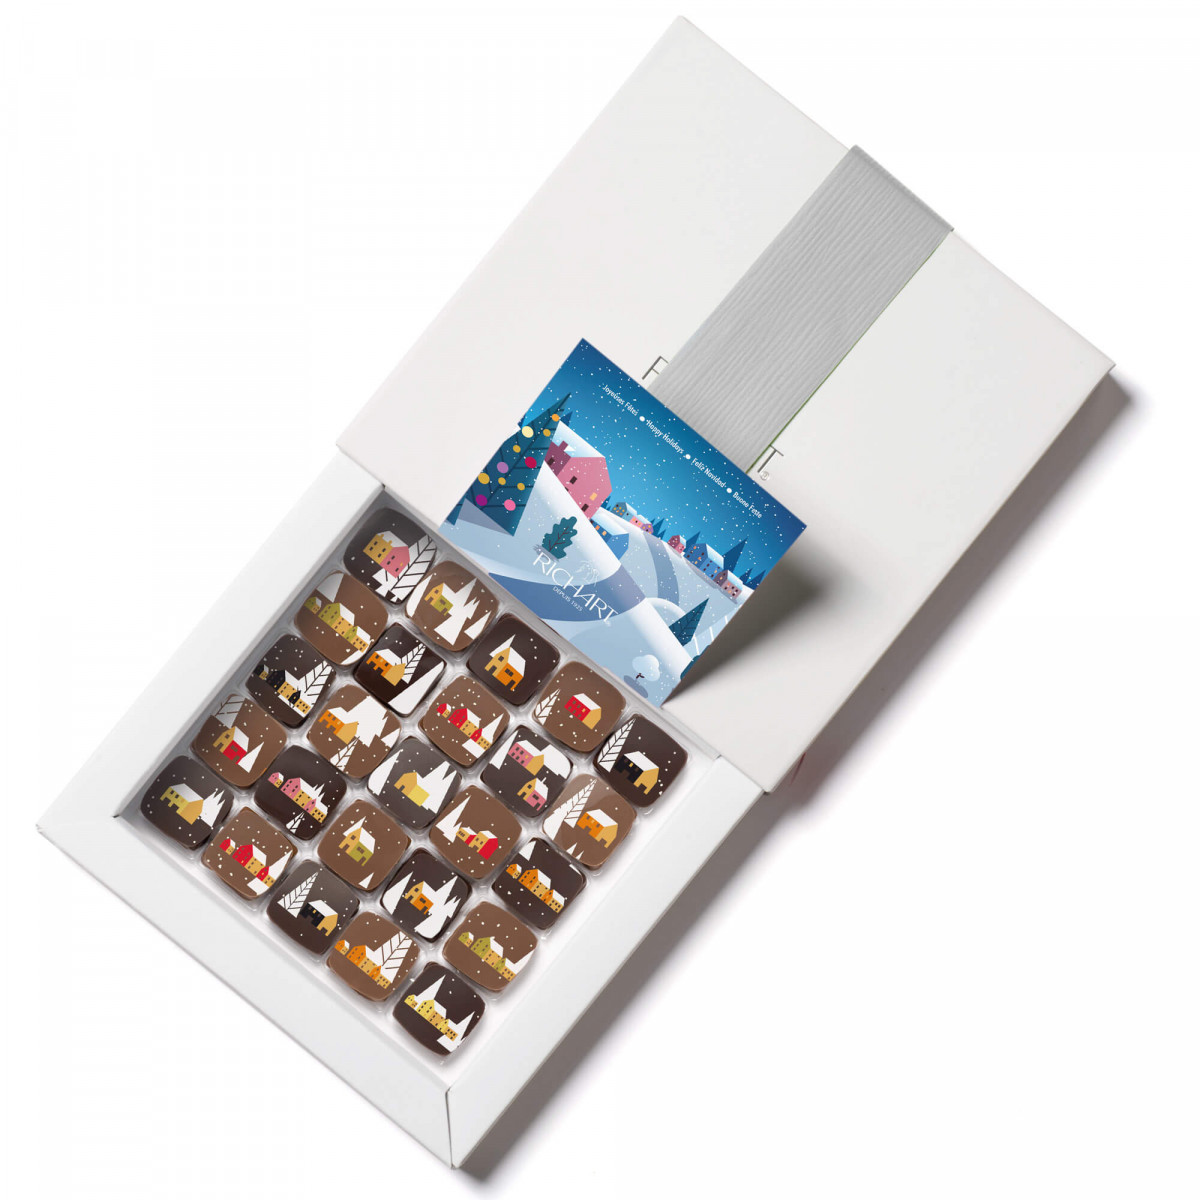 Coffret 25 chocolats fourrés de la nouvelle collection de Noël de la Maison RICHART